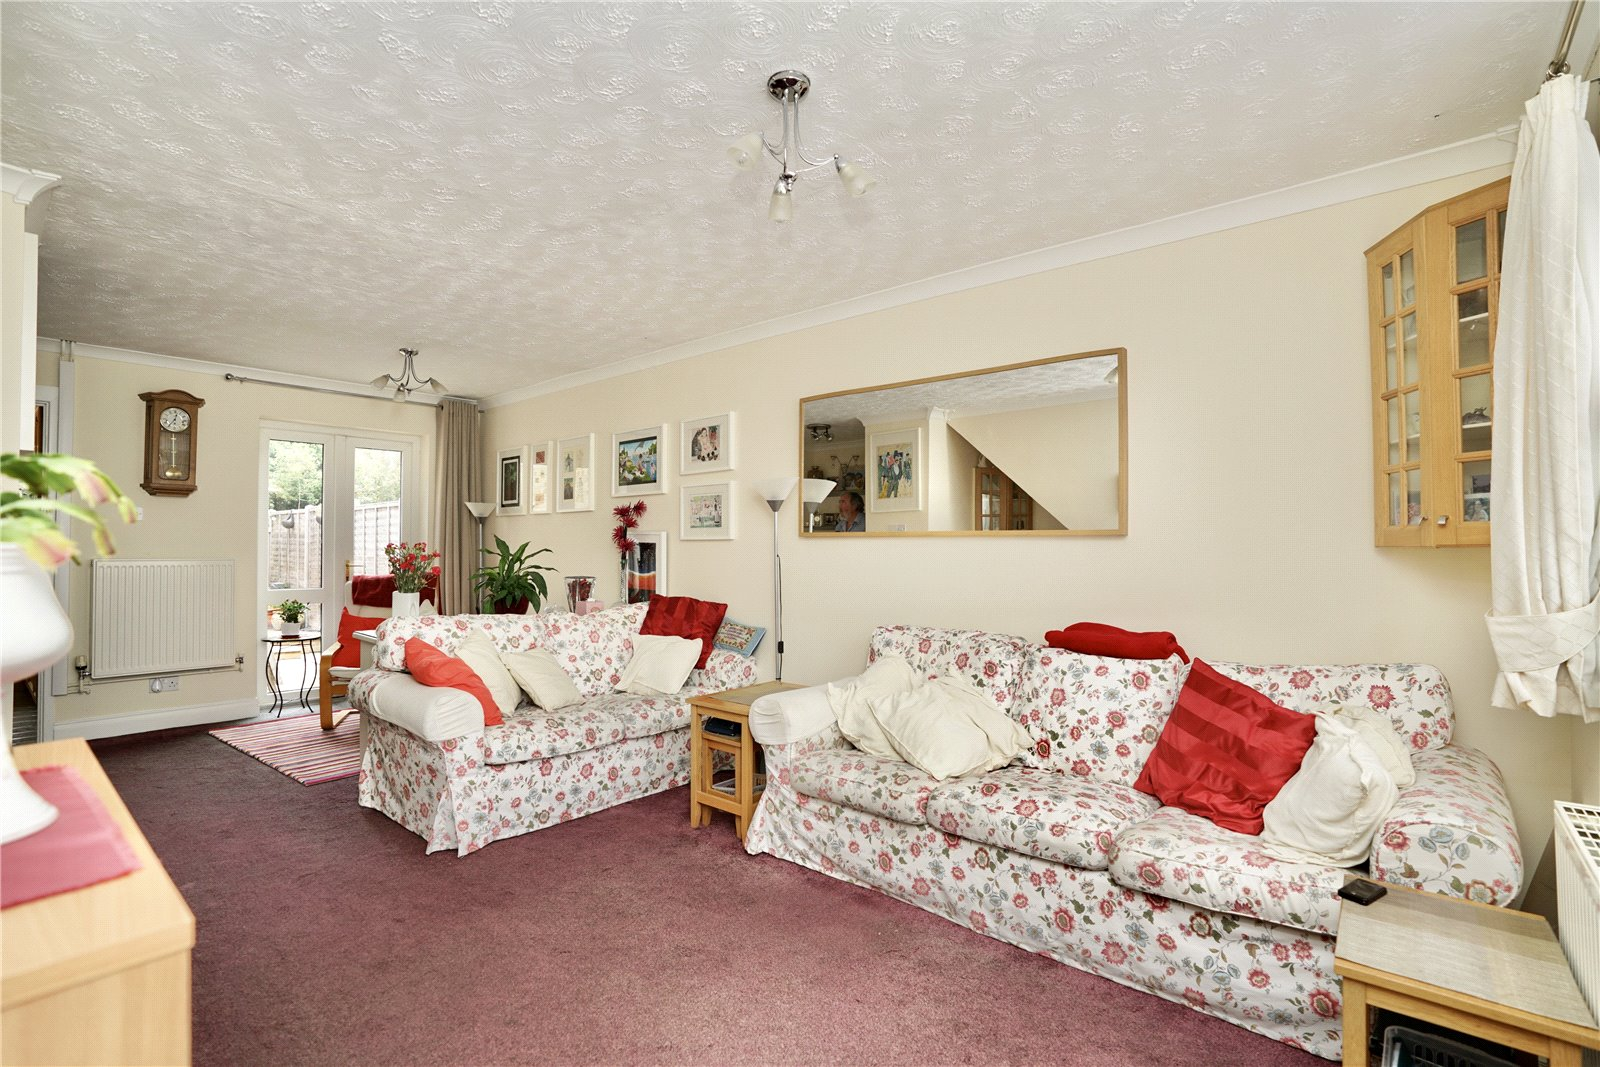 3 bed house for sale in Cunningham Way, Eaton Socon 1